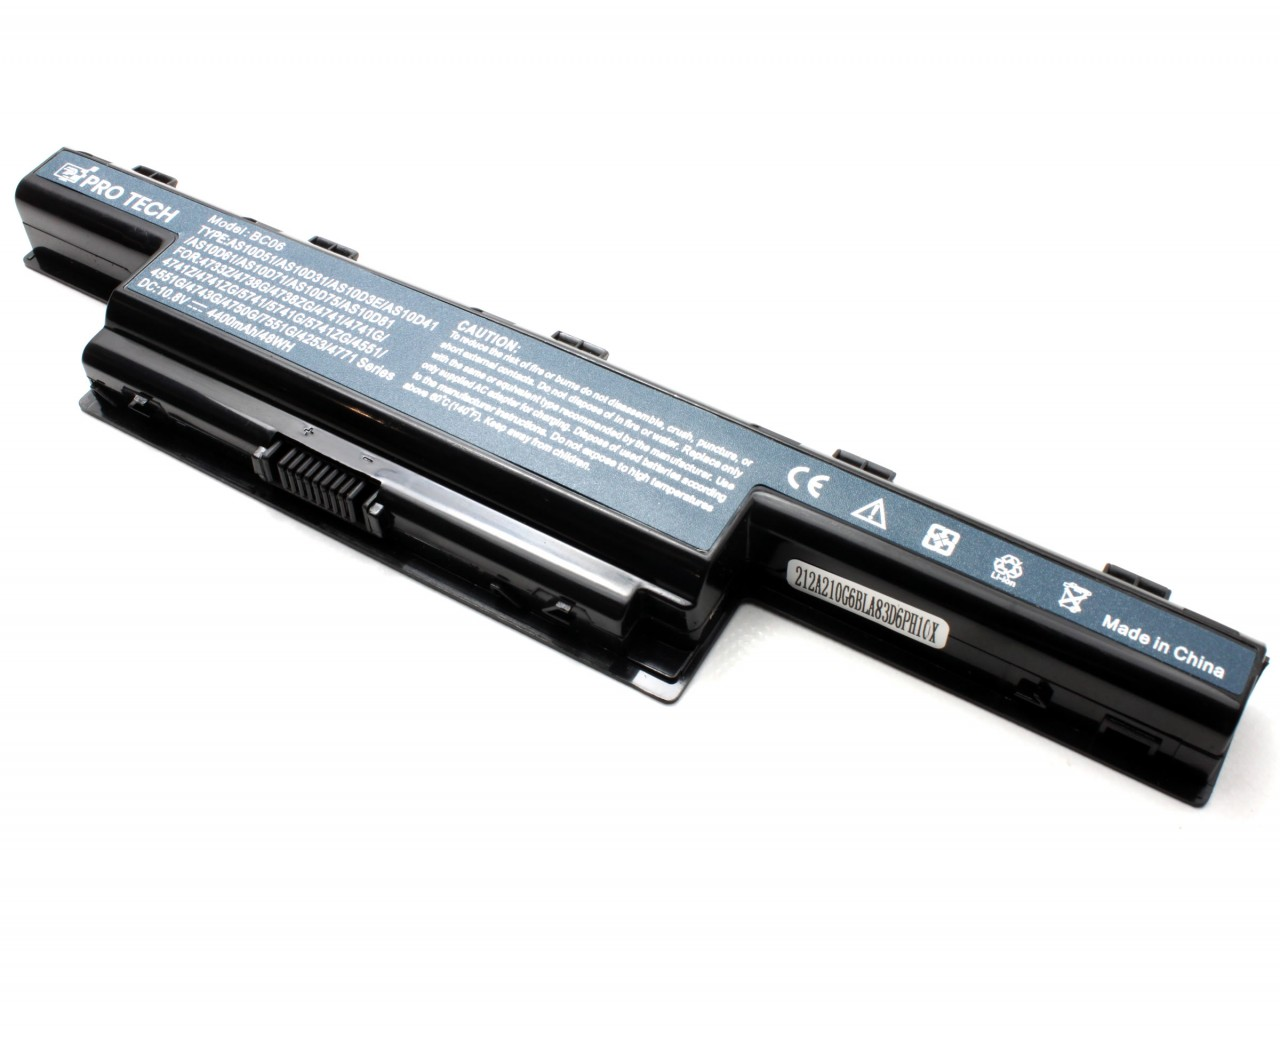 Baterie Packard Bell EasyNote LM98 9 celule imagine powerlaptop.ro 2021